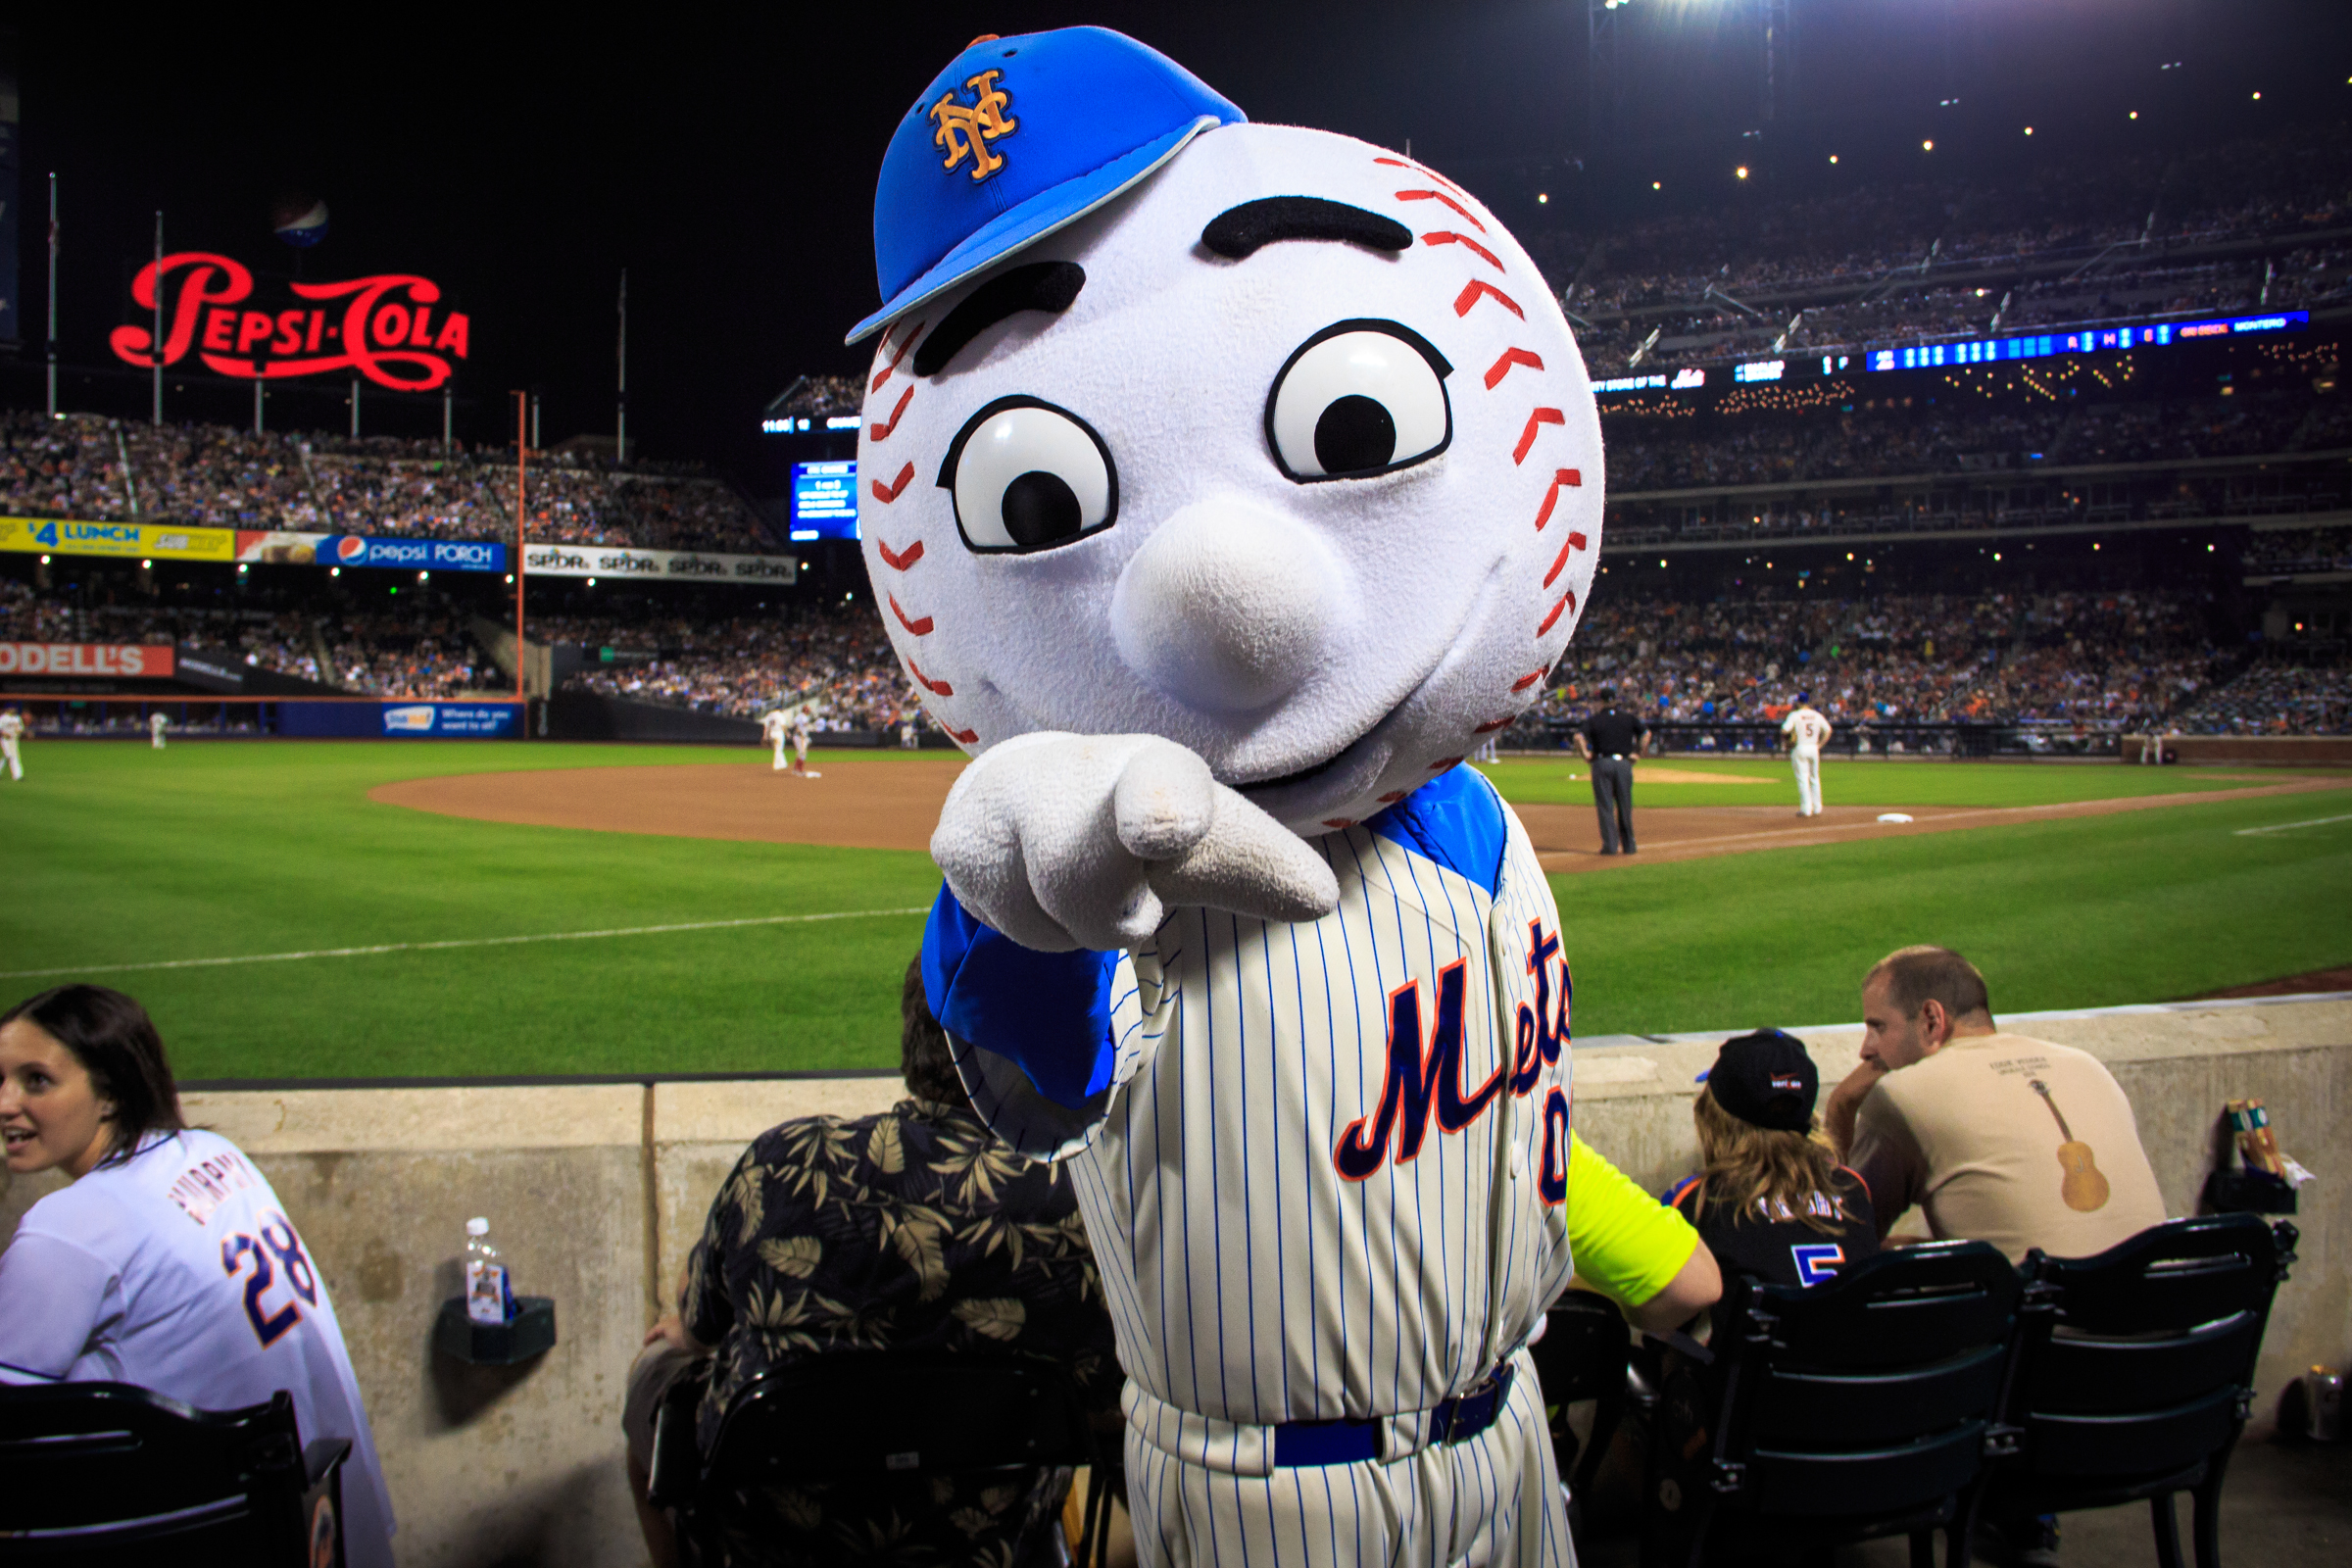 mr met, via flickr